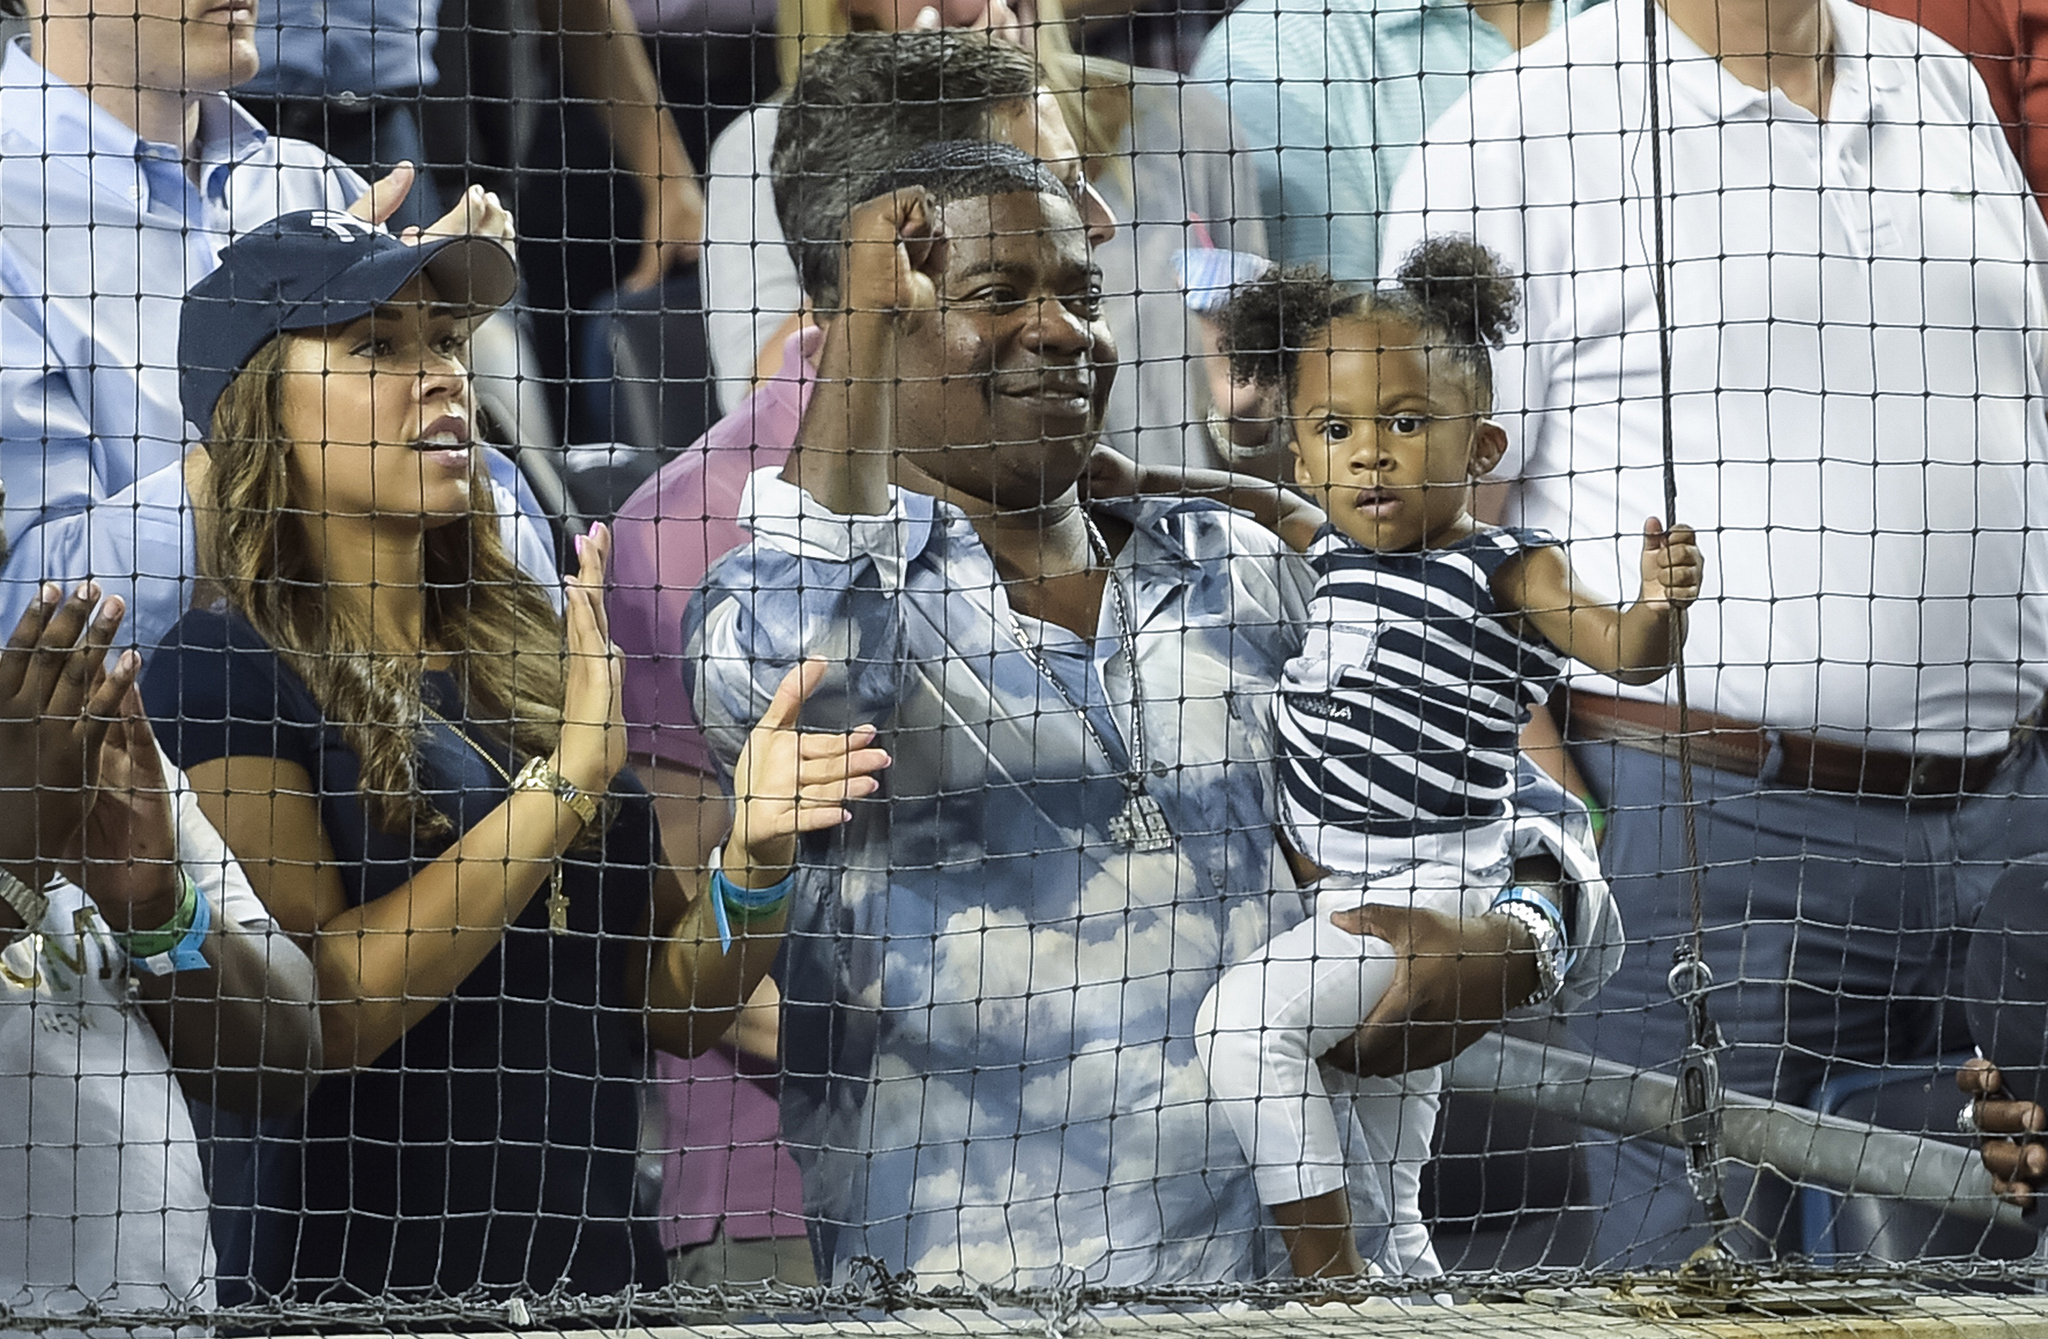 Tracy Morgan attends his first Yankees game since the car crash that nearly killed him (Getty Images)